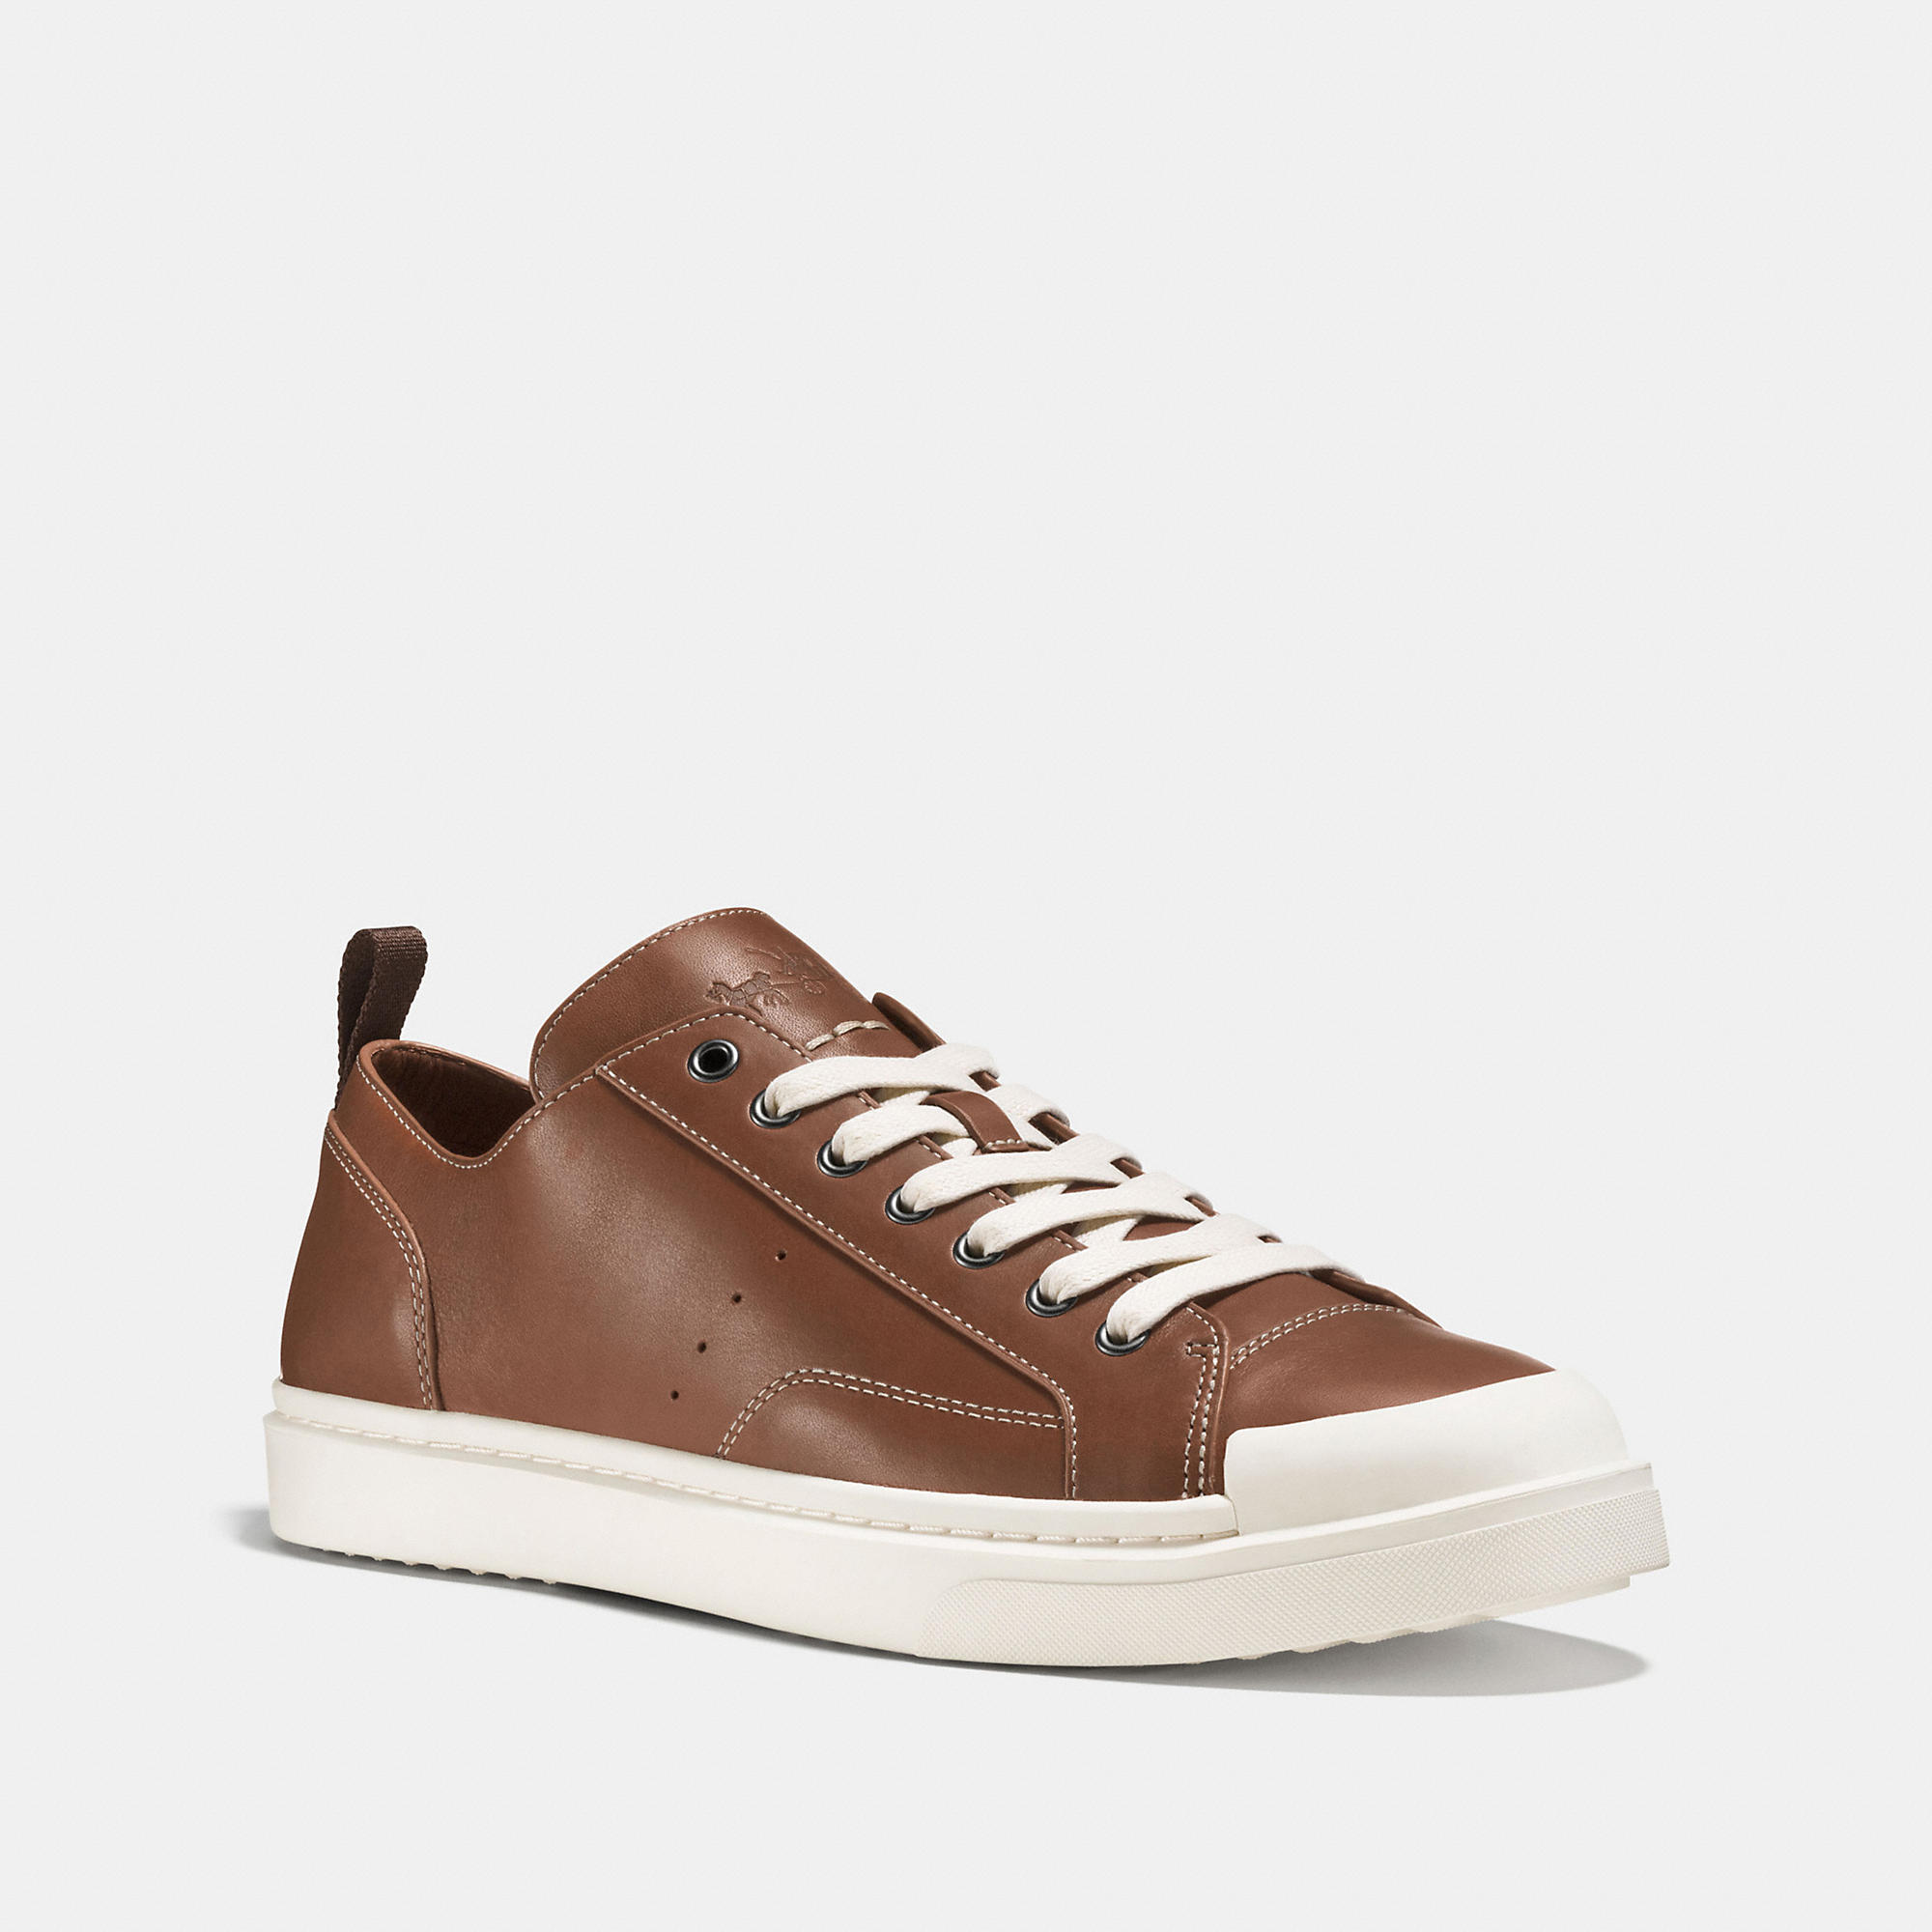 Coach C114 Leather Lo Top Sneaker